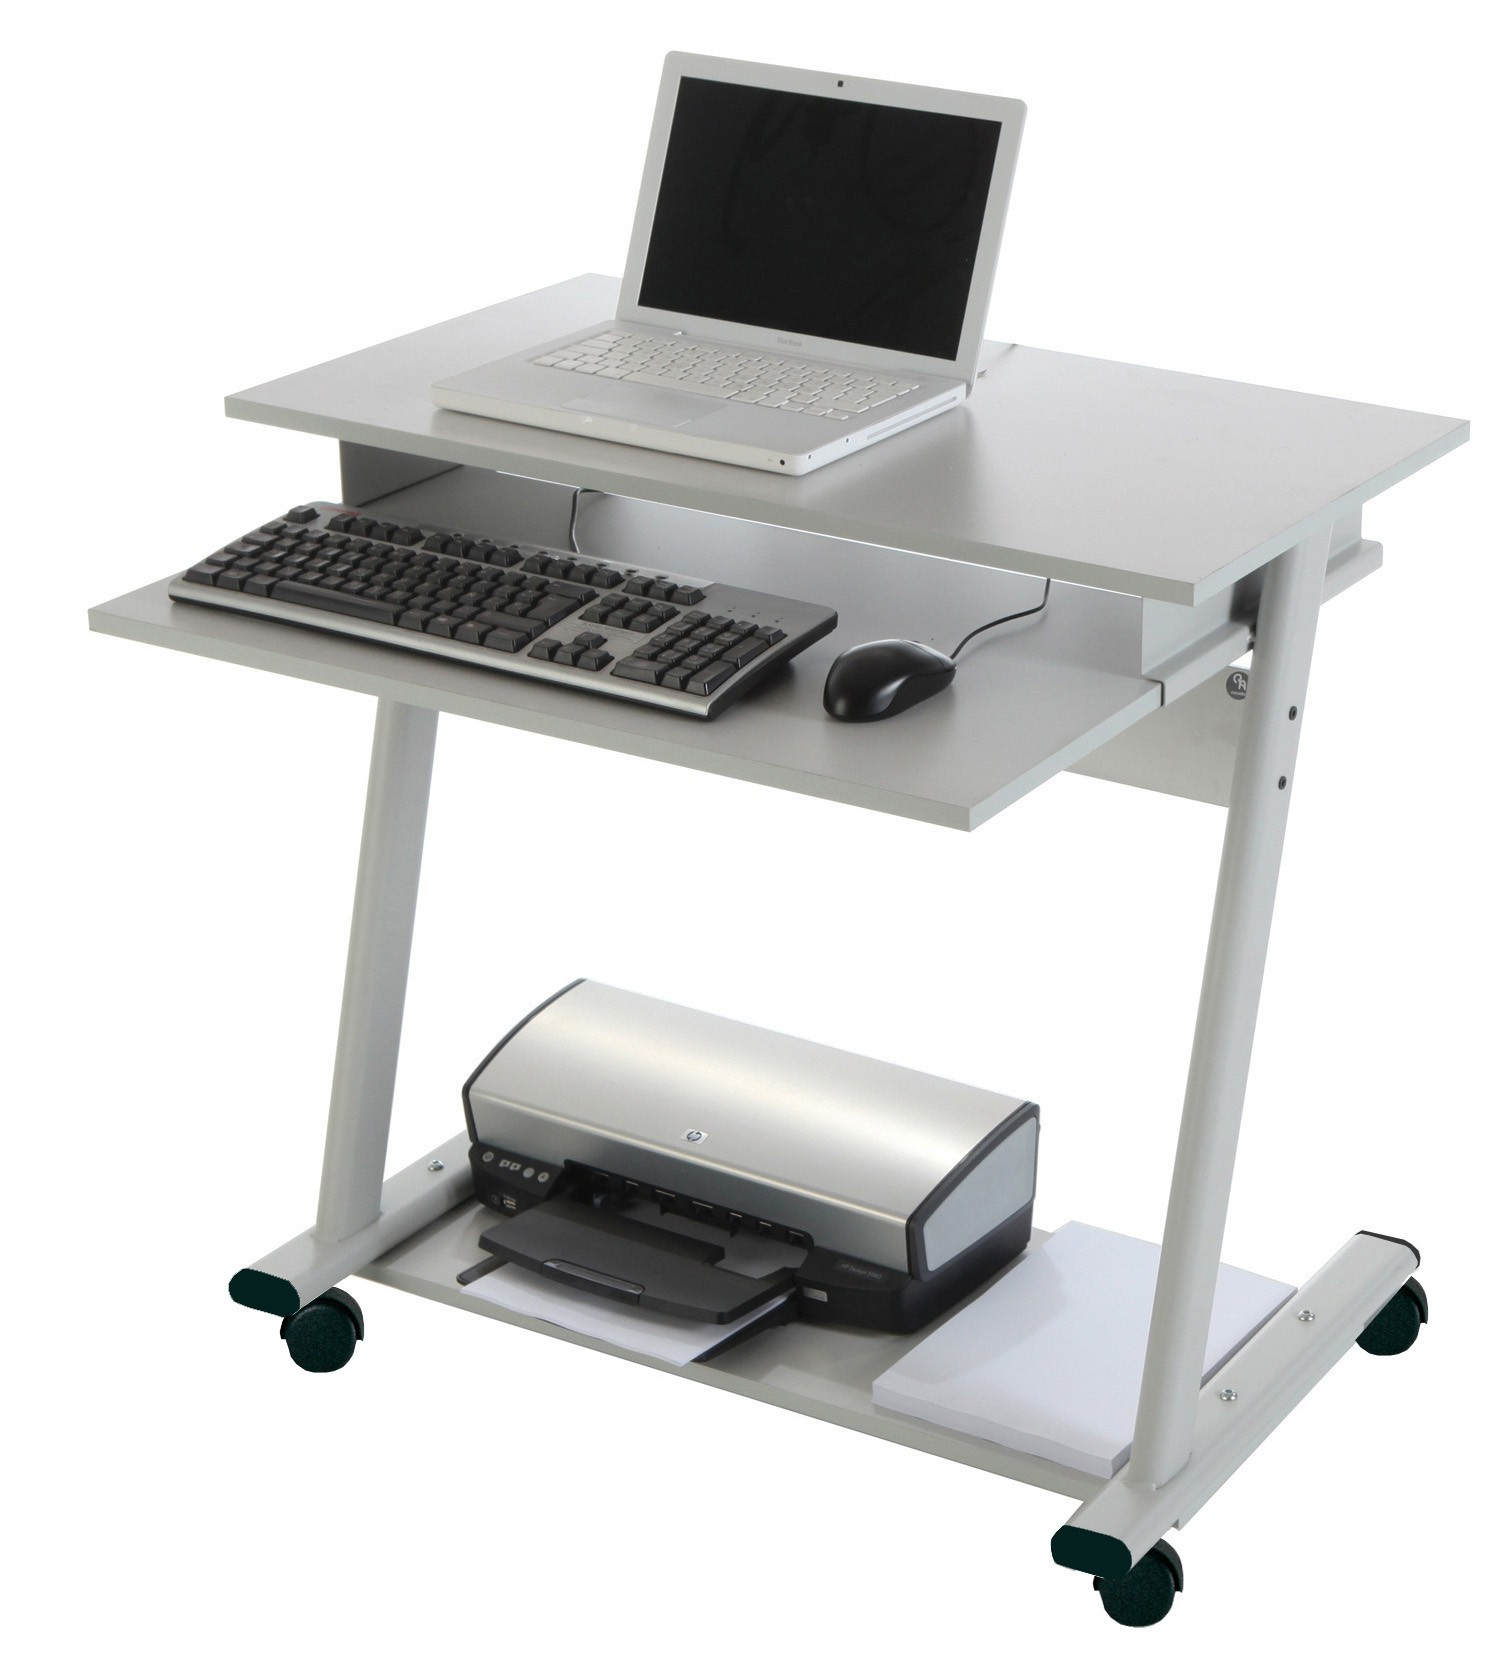 TABLE COMPUTER RD-9100 GREY